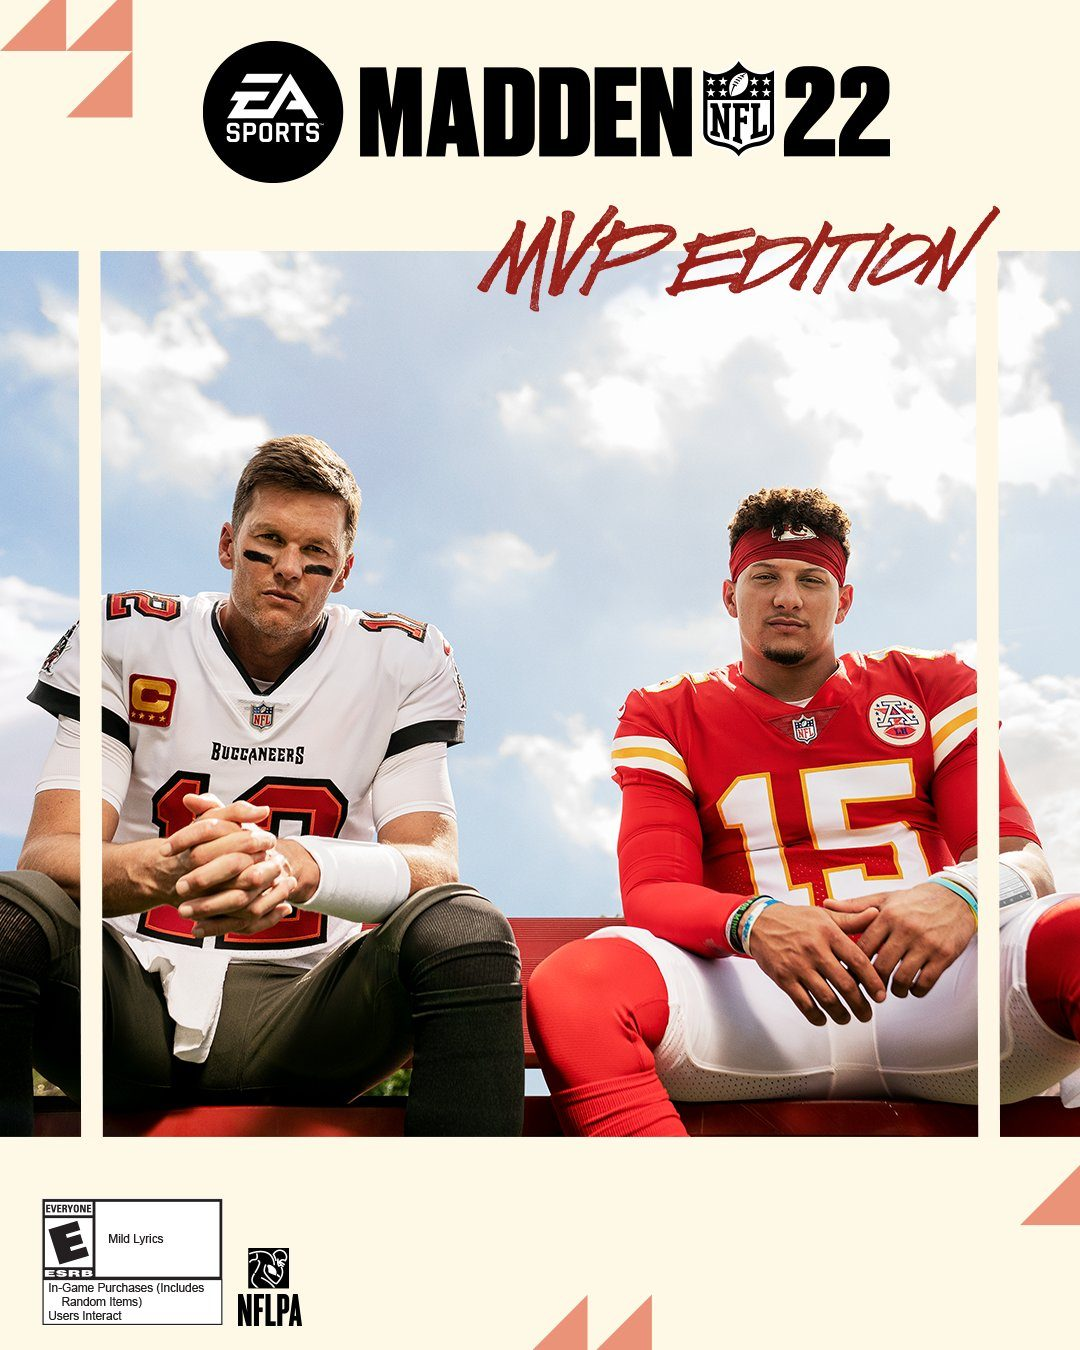 Madden NFL 22 Officially Revealed Featuring Patrick Mahomes and Tom Brady As Cover Athletes